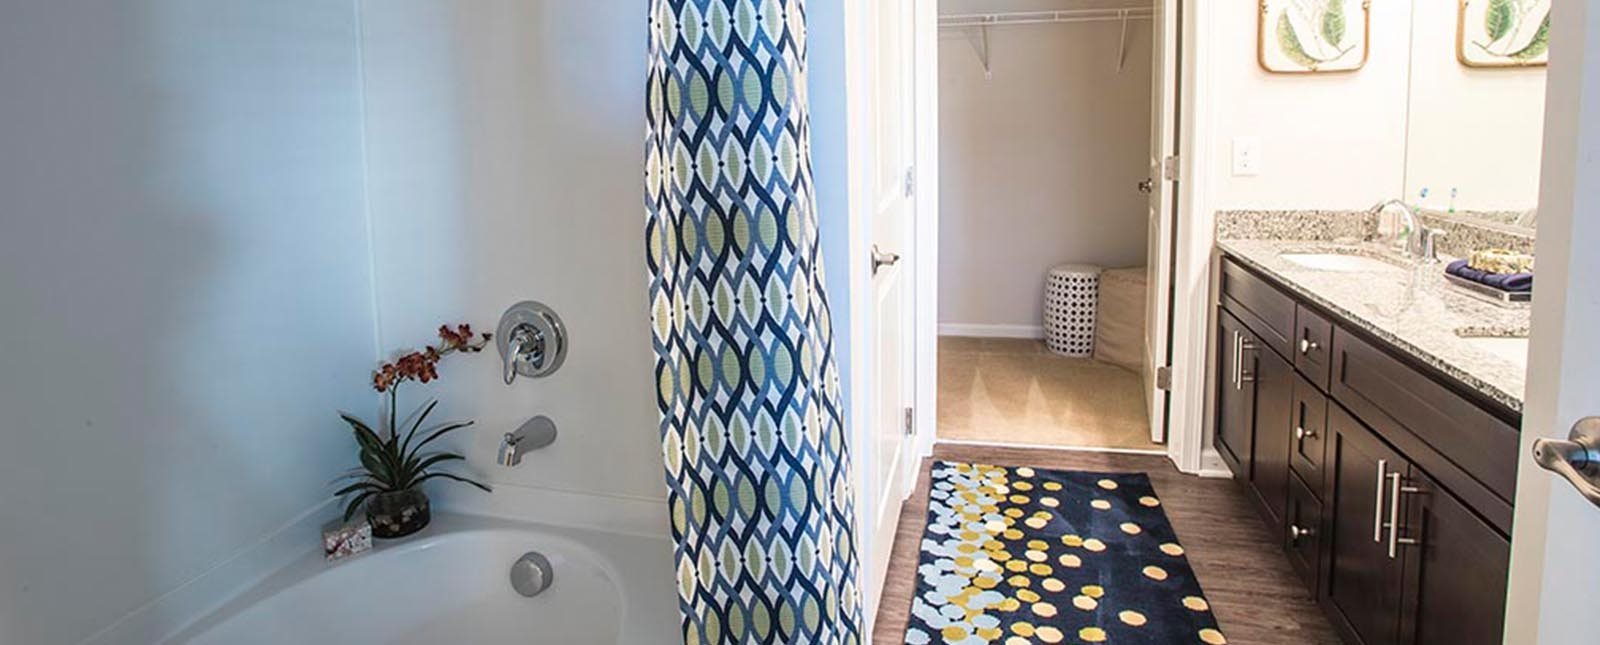 Exquisite Bathroom of The Haven luxury apartments in Malvern, PA